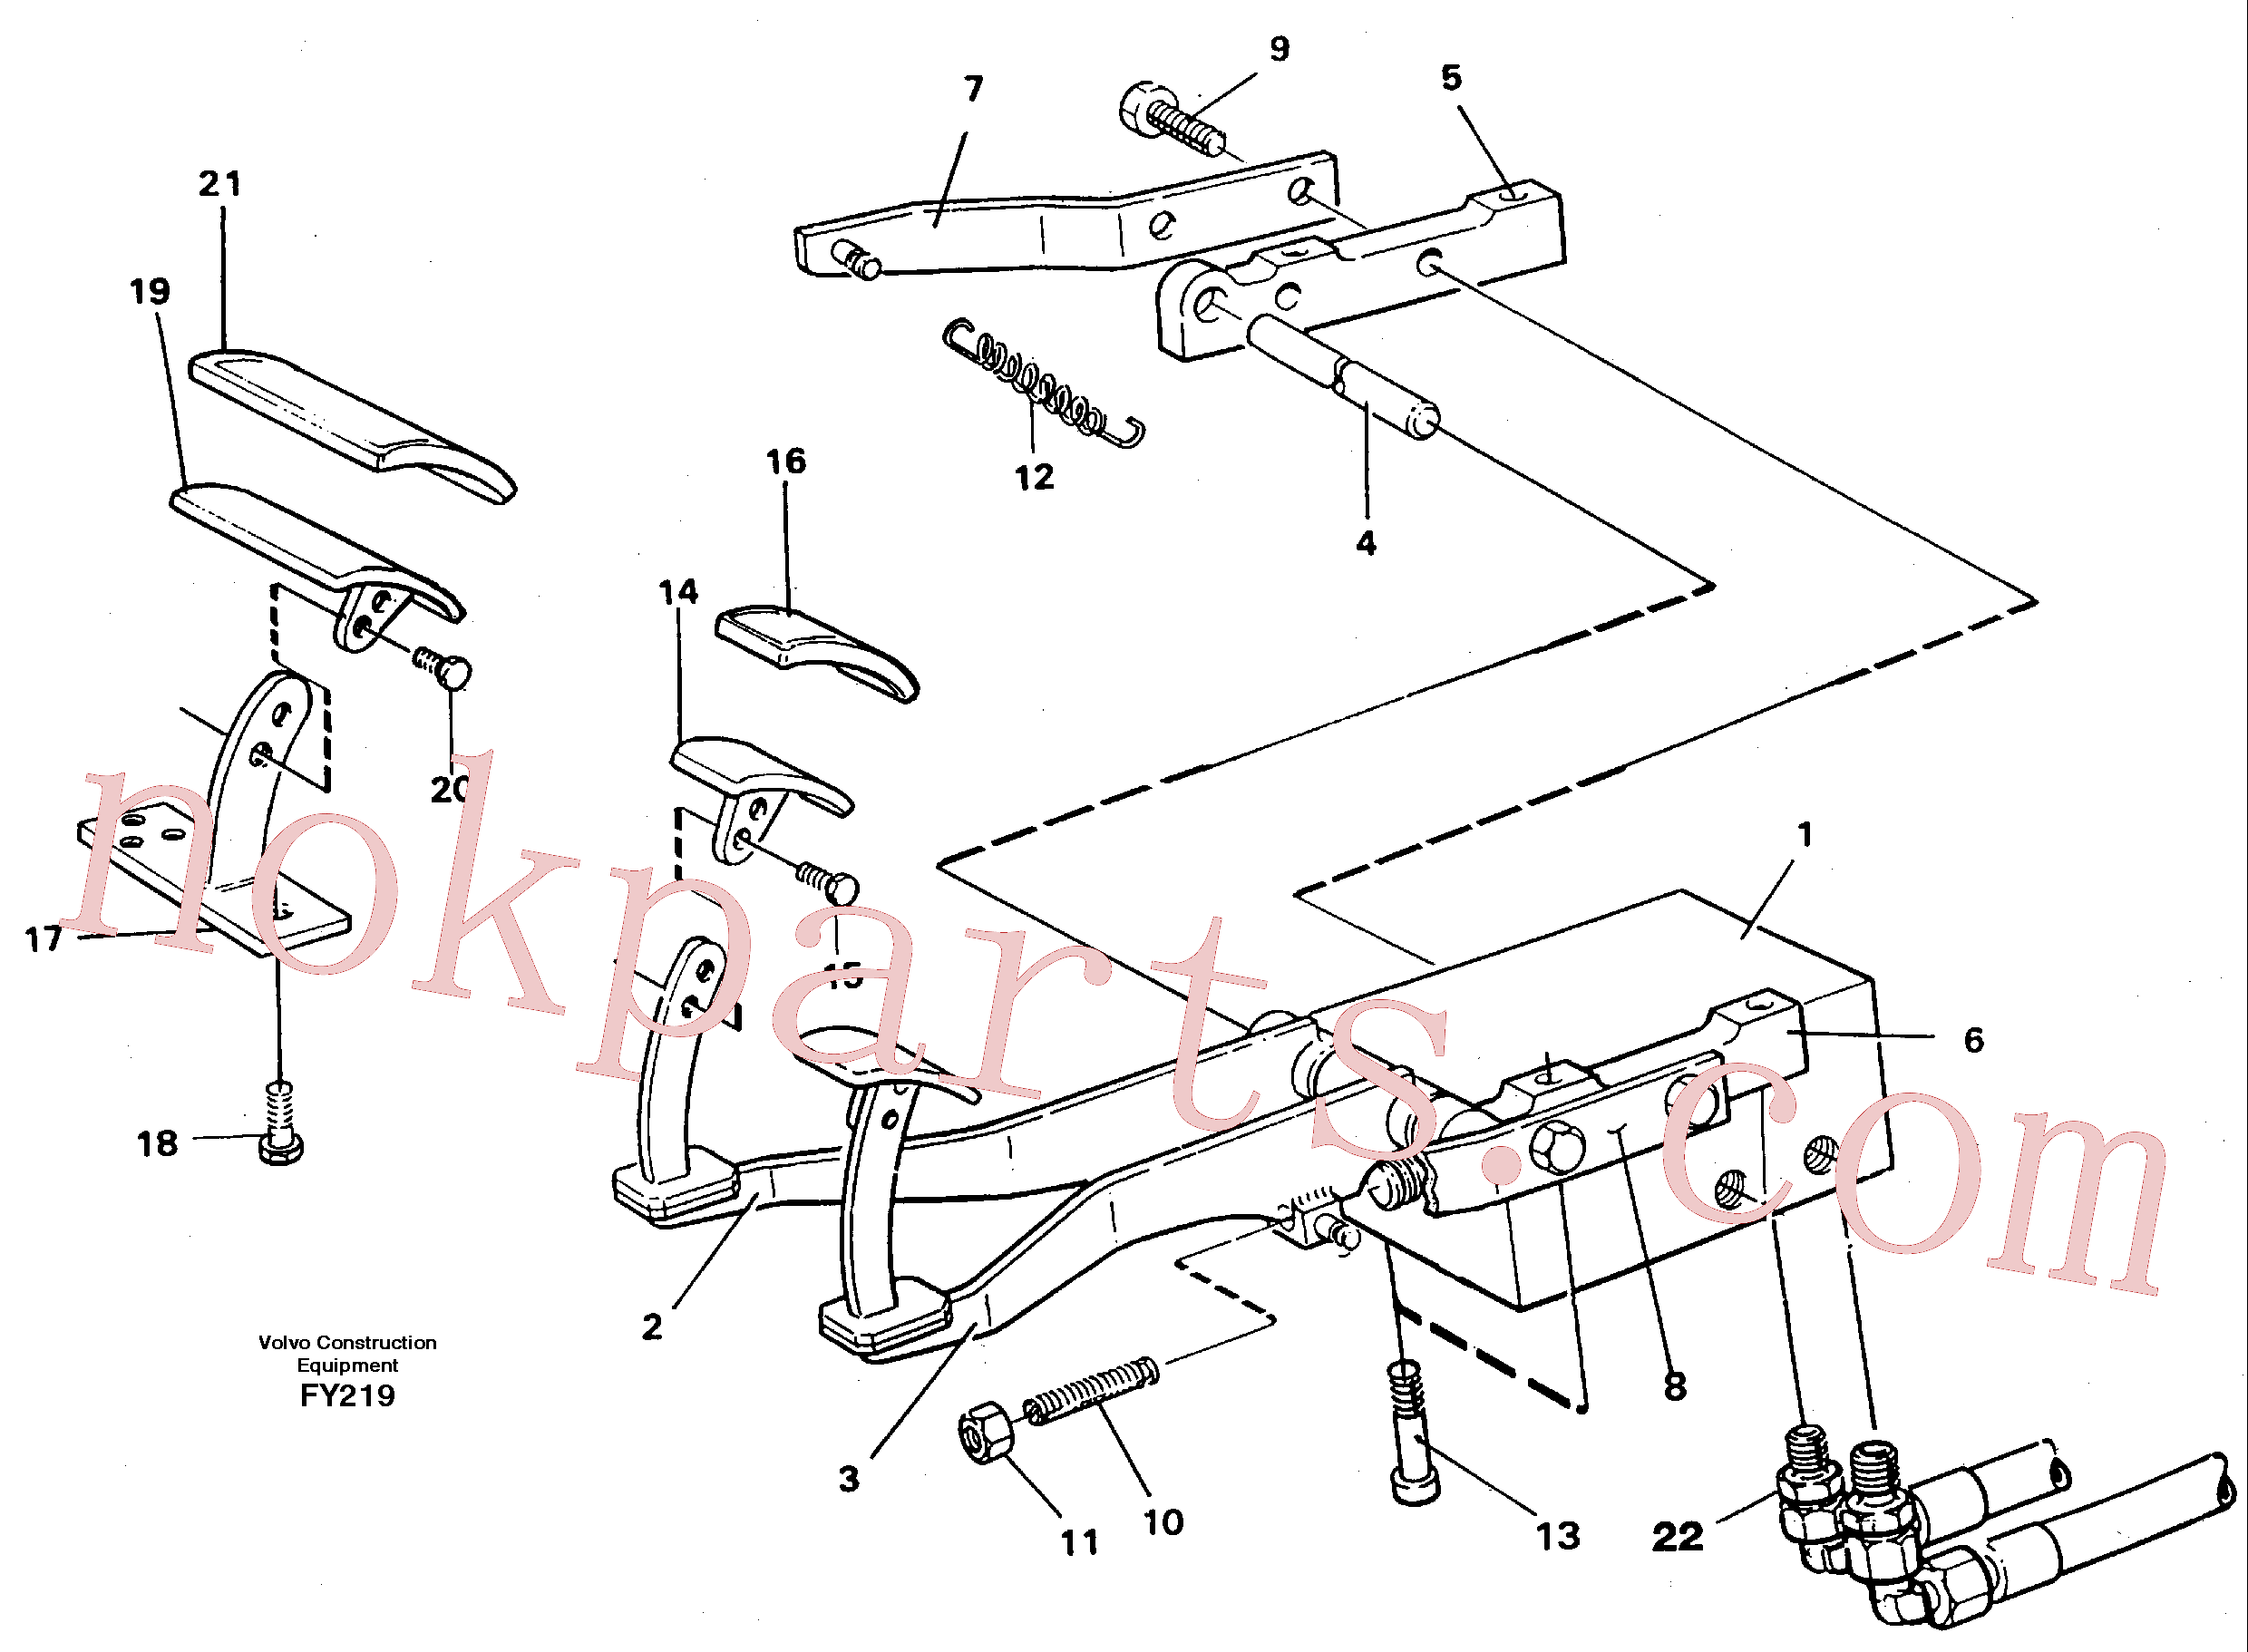 VOE14213032 for Volvo Pedal valve and foot rest(FY219 assembly)